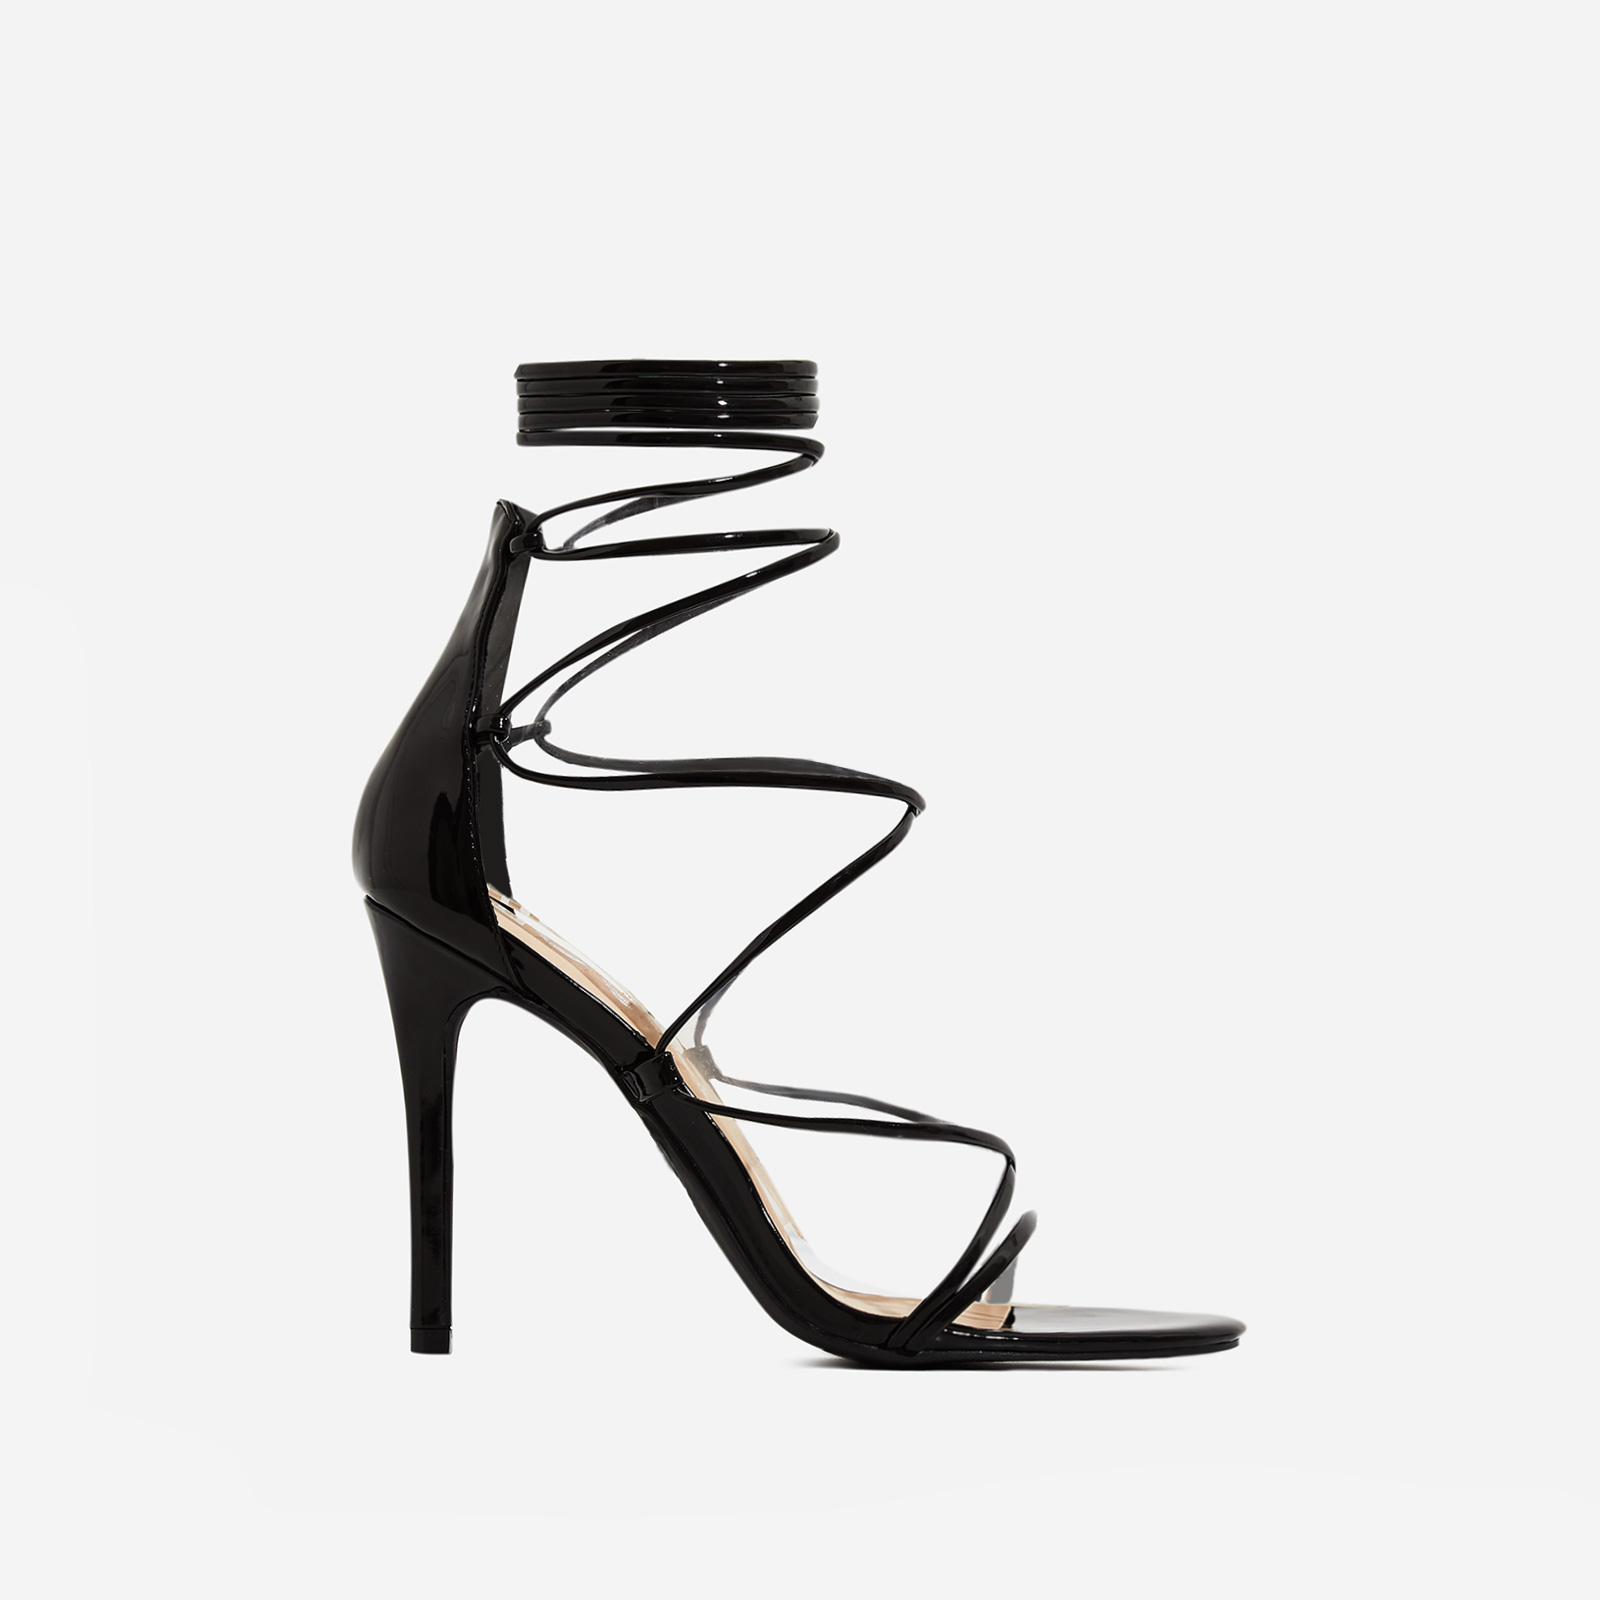 Brooklyn Lace Up Heel In Black Patent